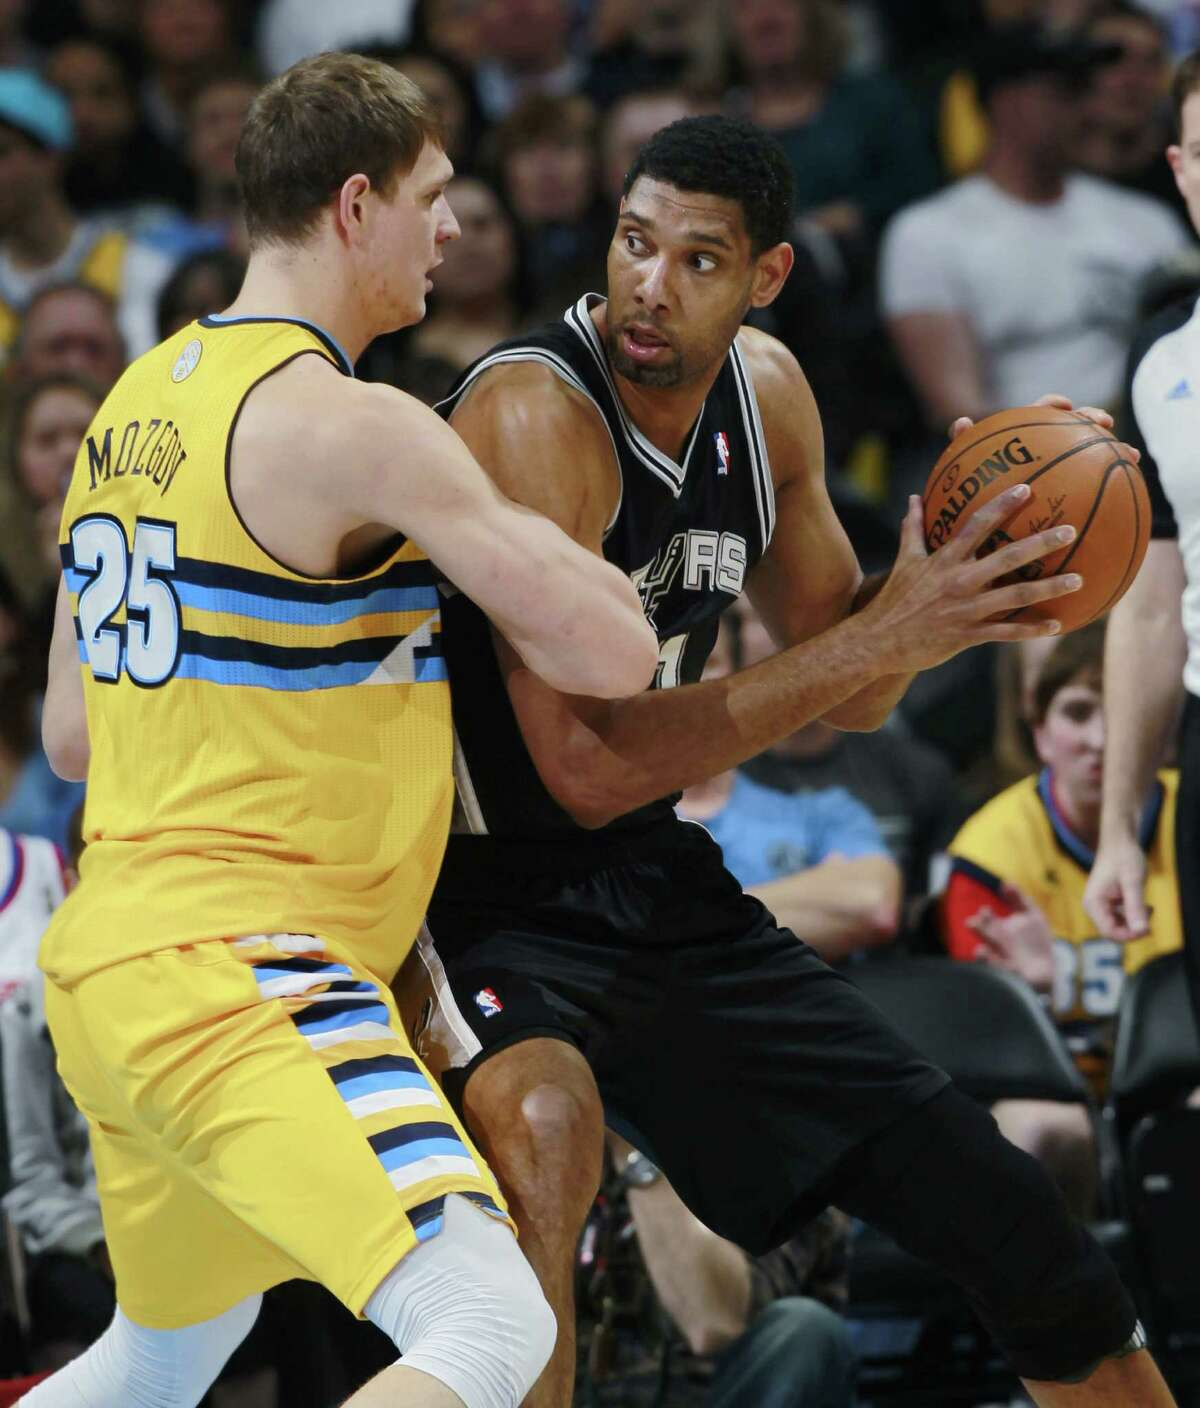 Tim Duncan (right) works the ball inside as the Nuggets' Timofey Mozgov defends. Duncan finished with 20 points, eight rebounds and two blocks.